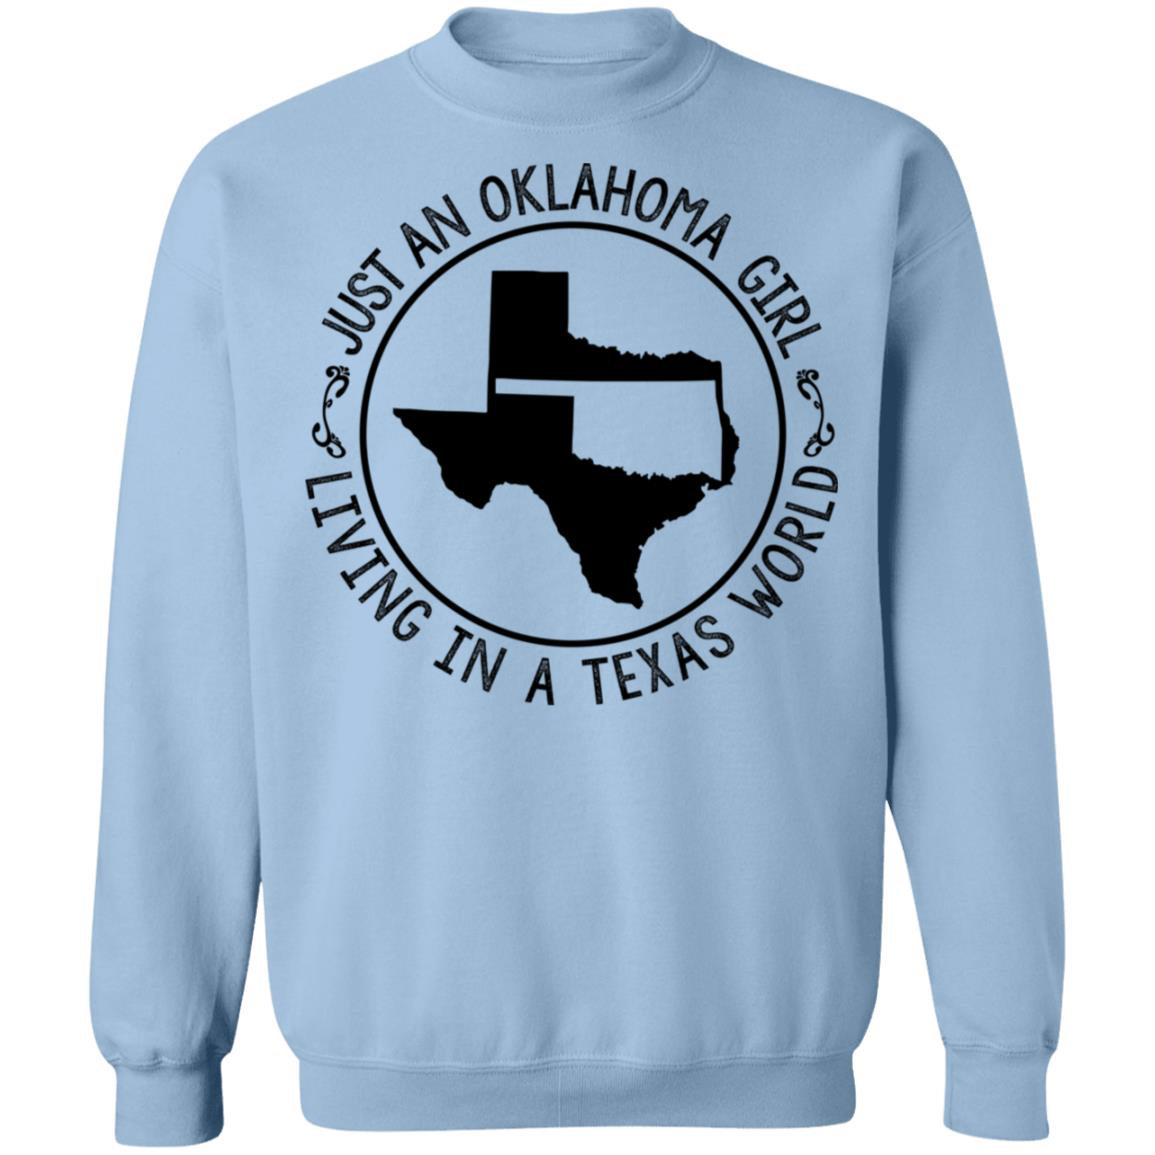 Just An Oklahoma Girl Living In A Texas World T- Shirt